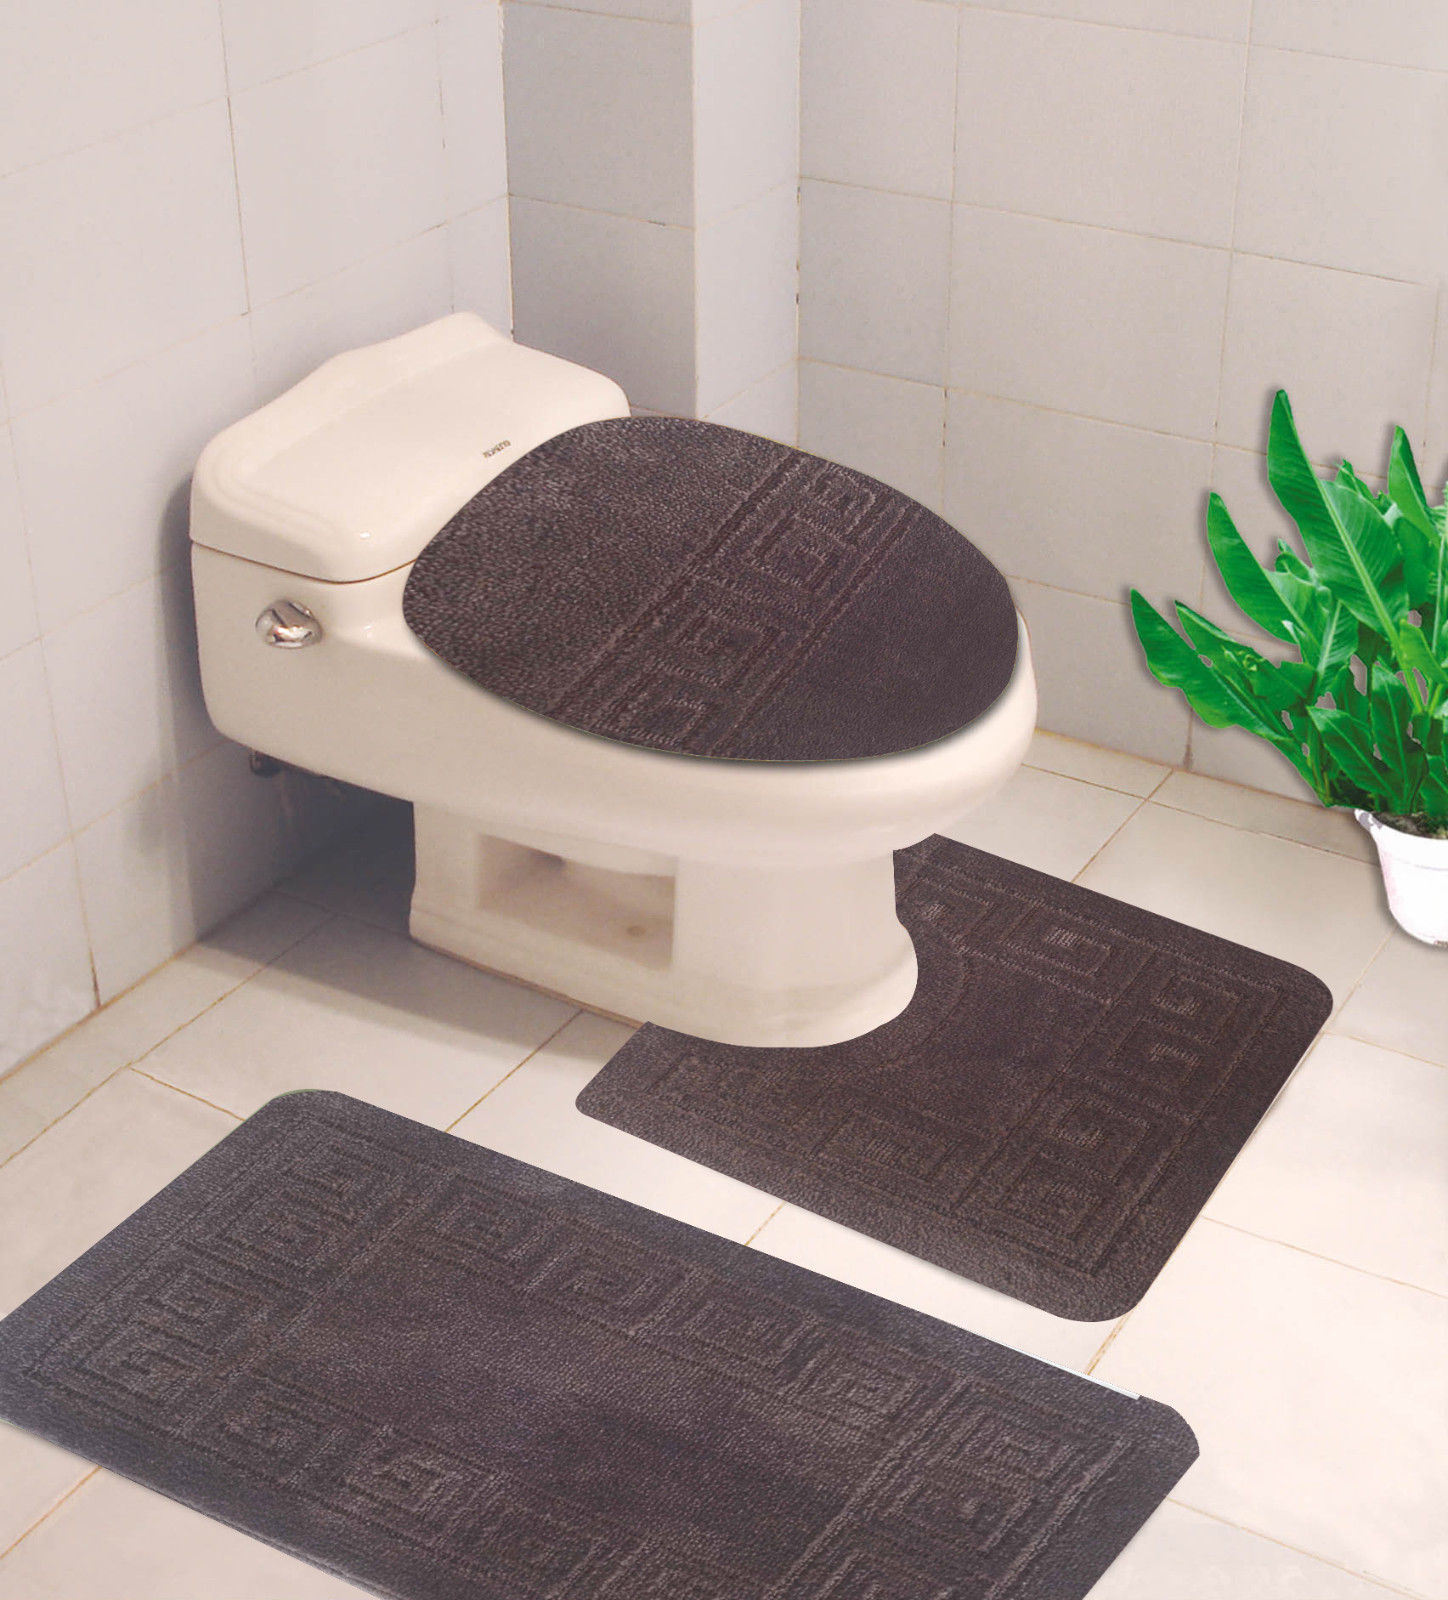 Bathroom Mats Set 3 Piece Embossed Extra Soft Shower Bath Rugs Mat 30x19contour Mat 19x19 Toilet Lid Cover 19x19 Washable Non Slip Mat Set with regard to size 1448 X 1600